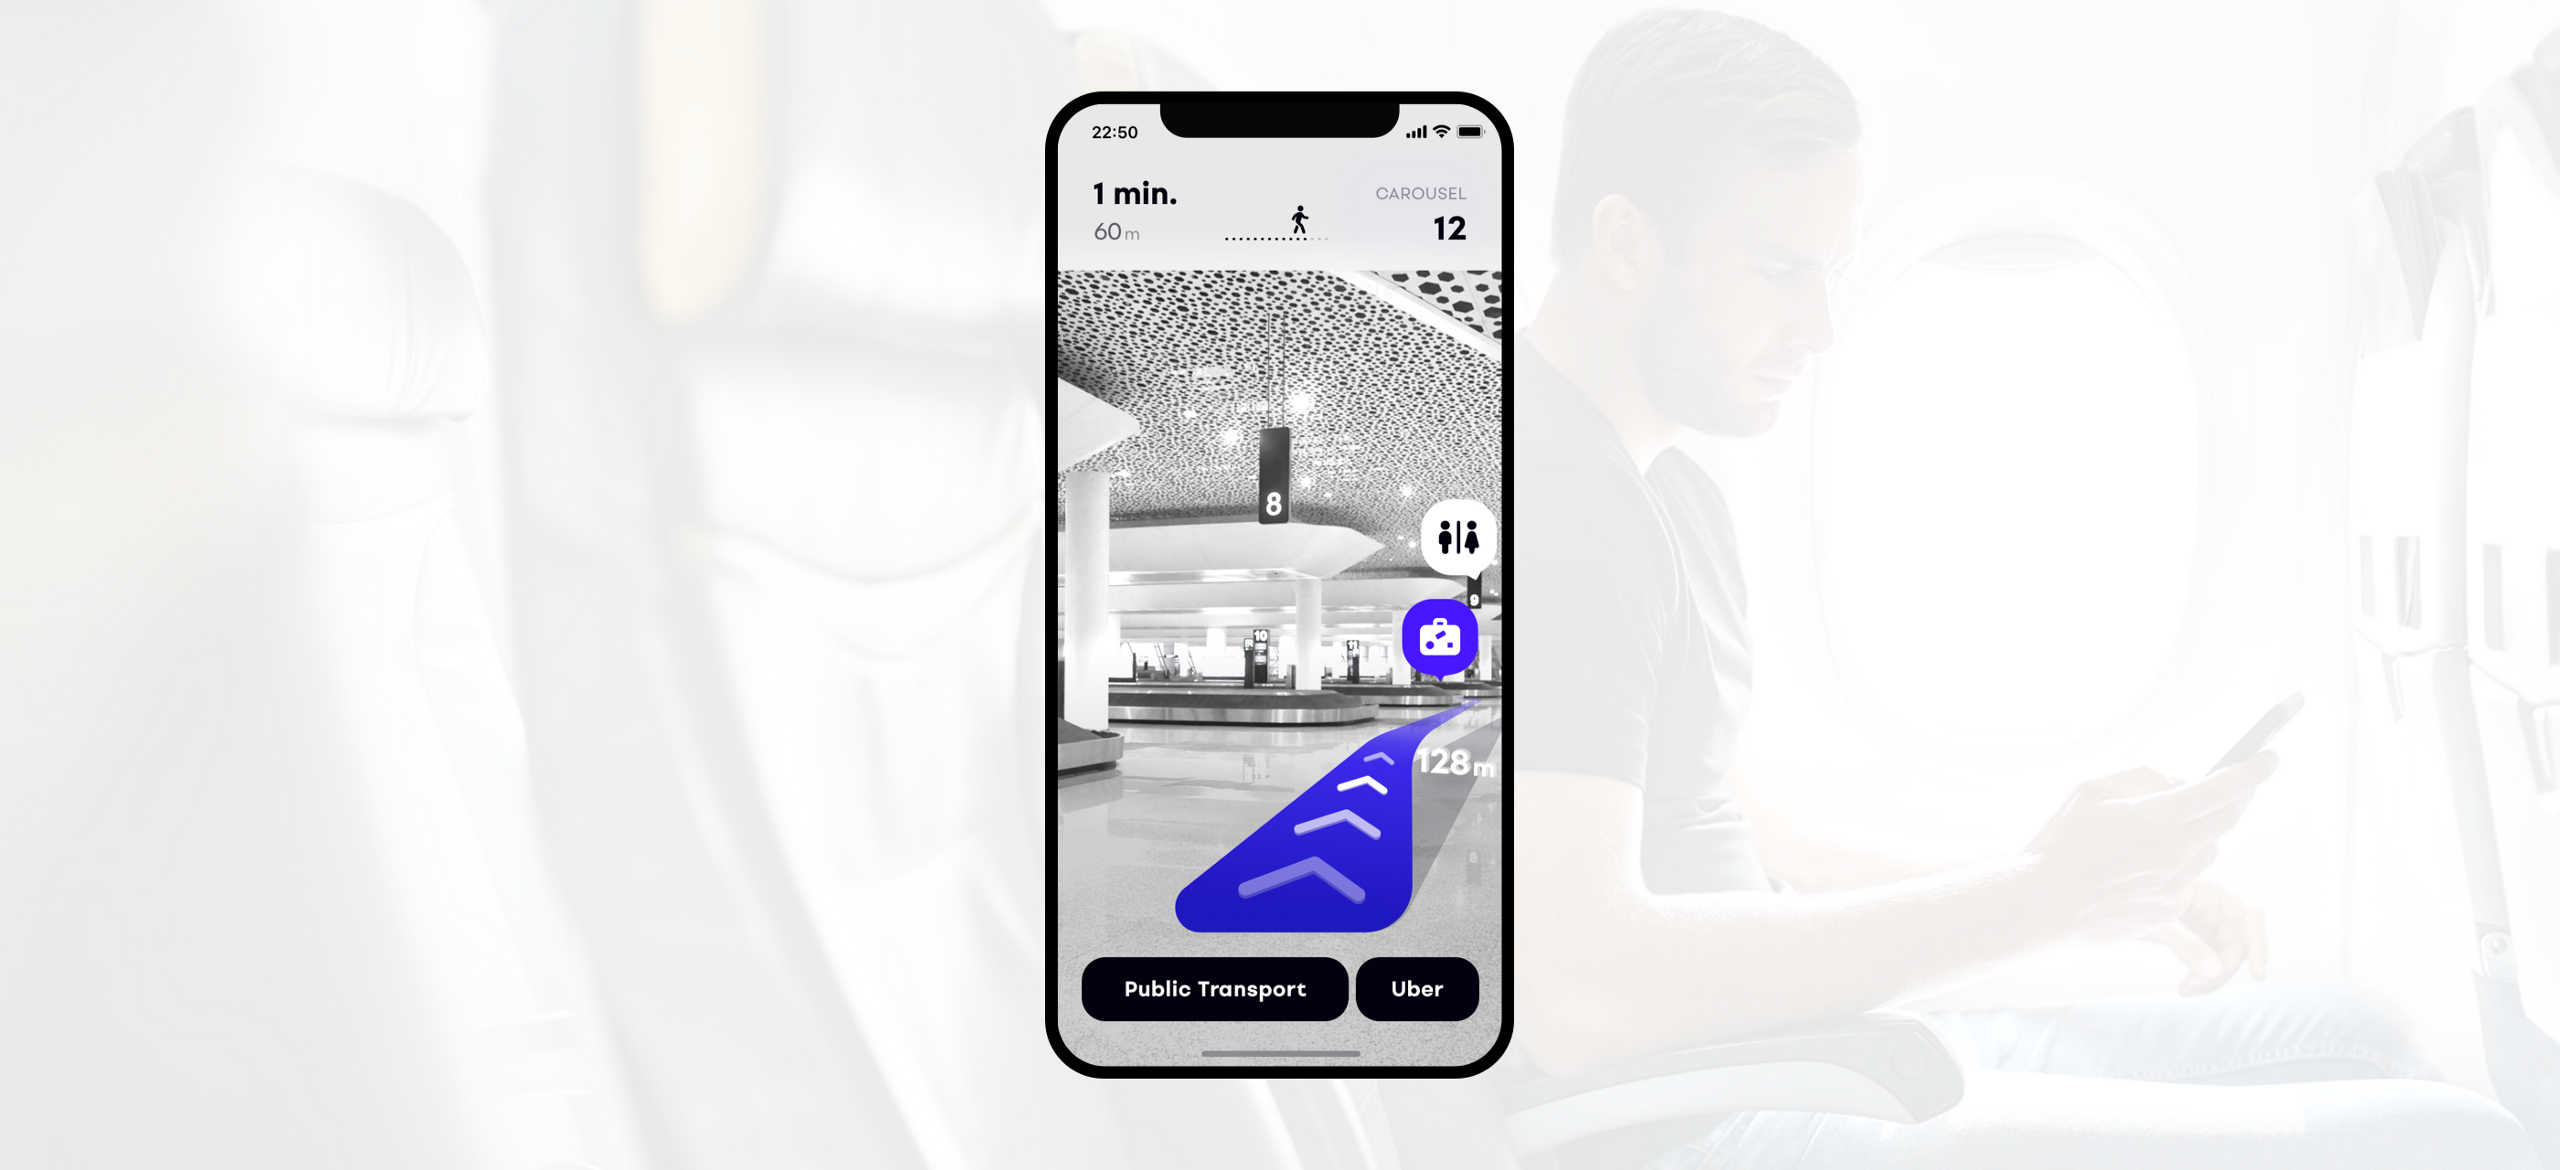 case-study-improved-airport-experience-through-ar-img